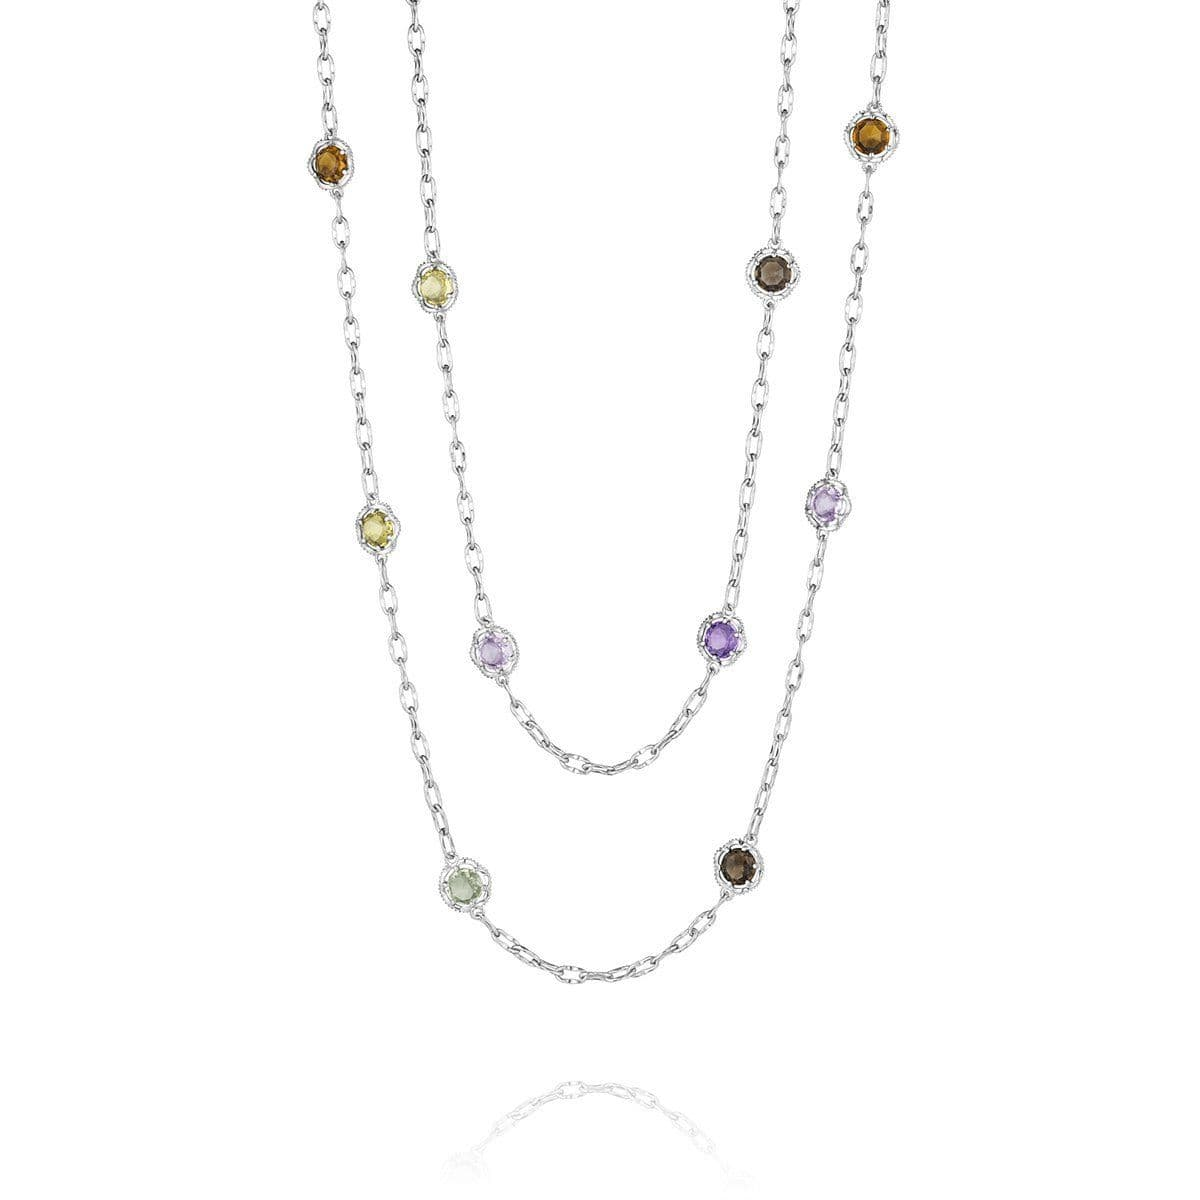 "Silver 38"" Colored Medley Necklace - SN108-Tacori-Renee Taylor Gallery"